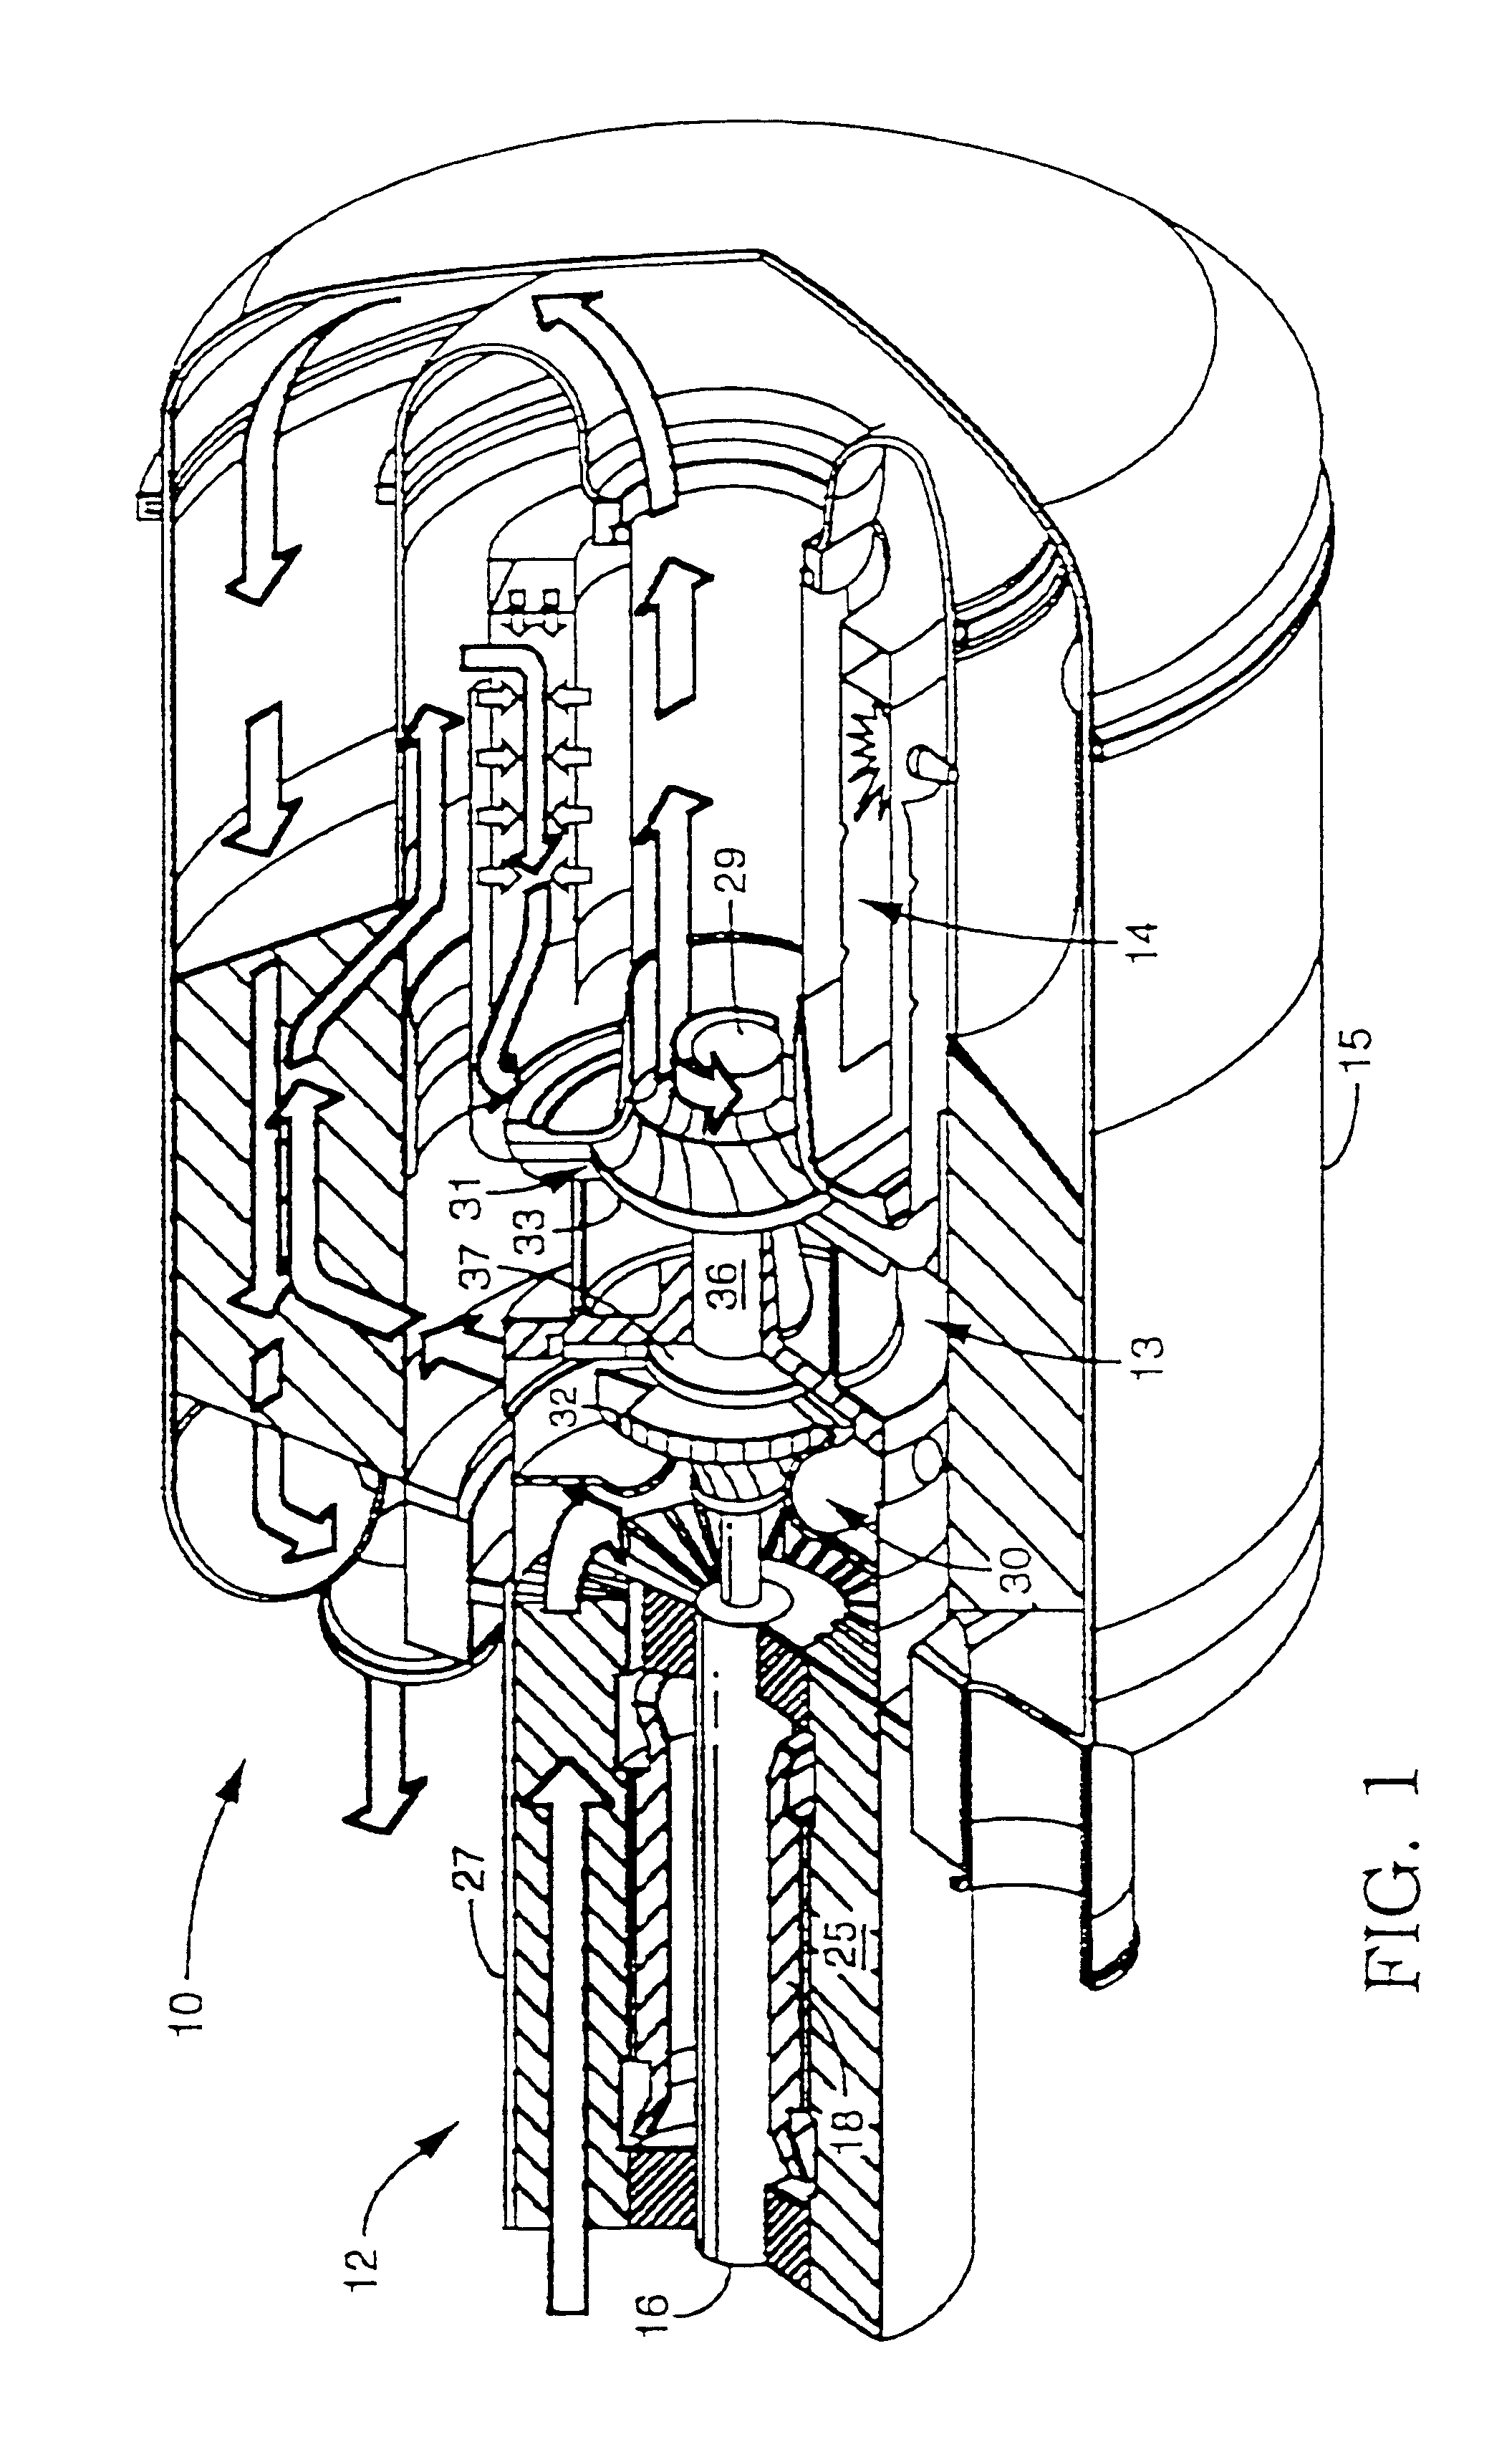 Patent US Power converter and control for microturbine